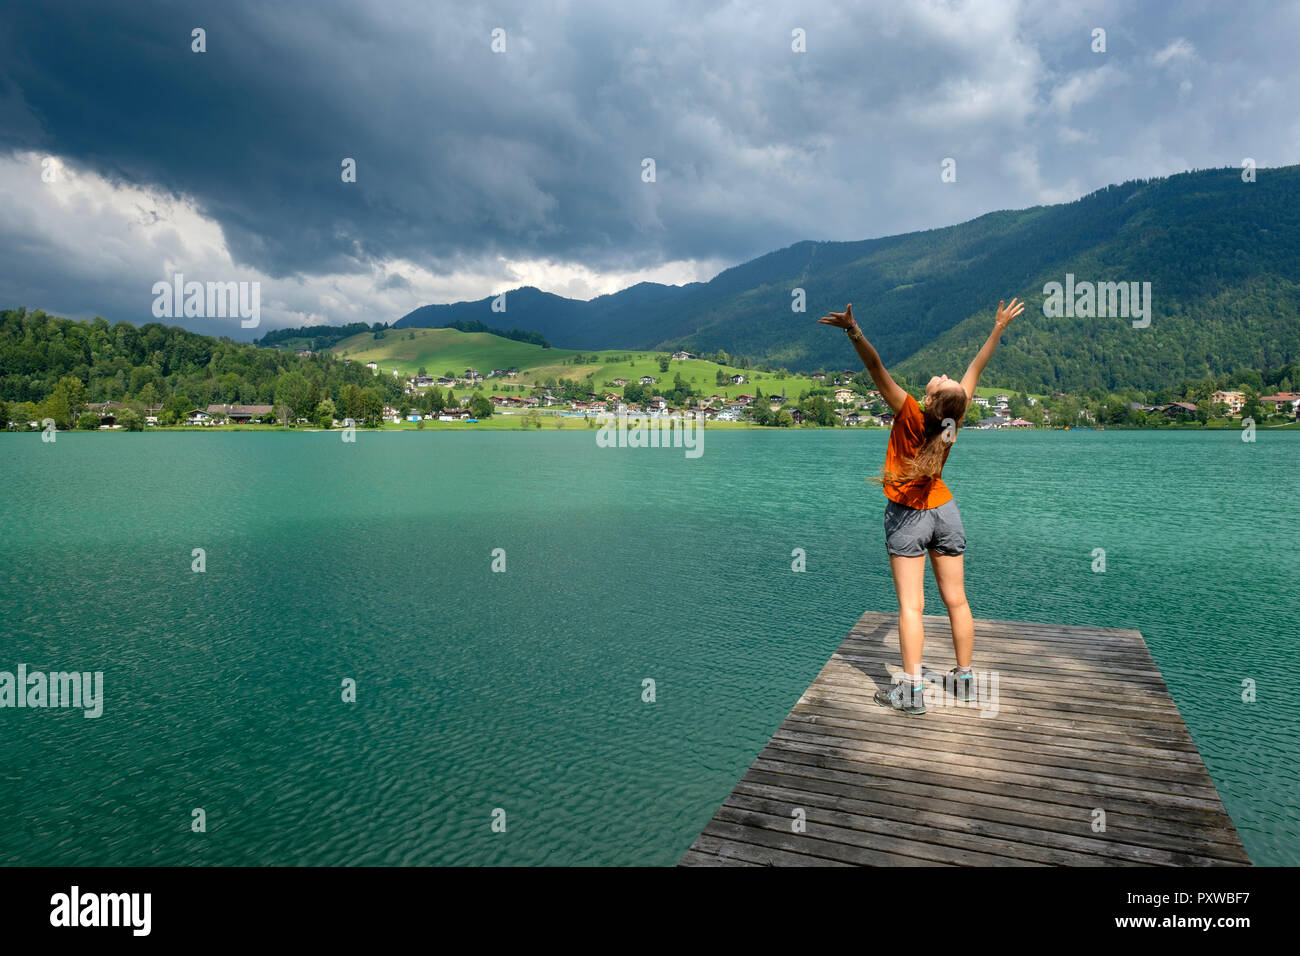 Teenager standing on wooden jetty, raised arms - Stock Image